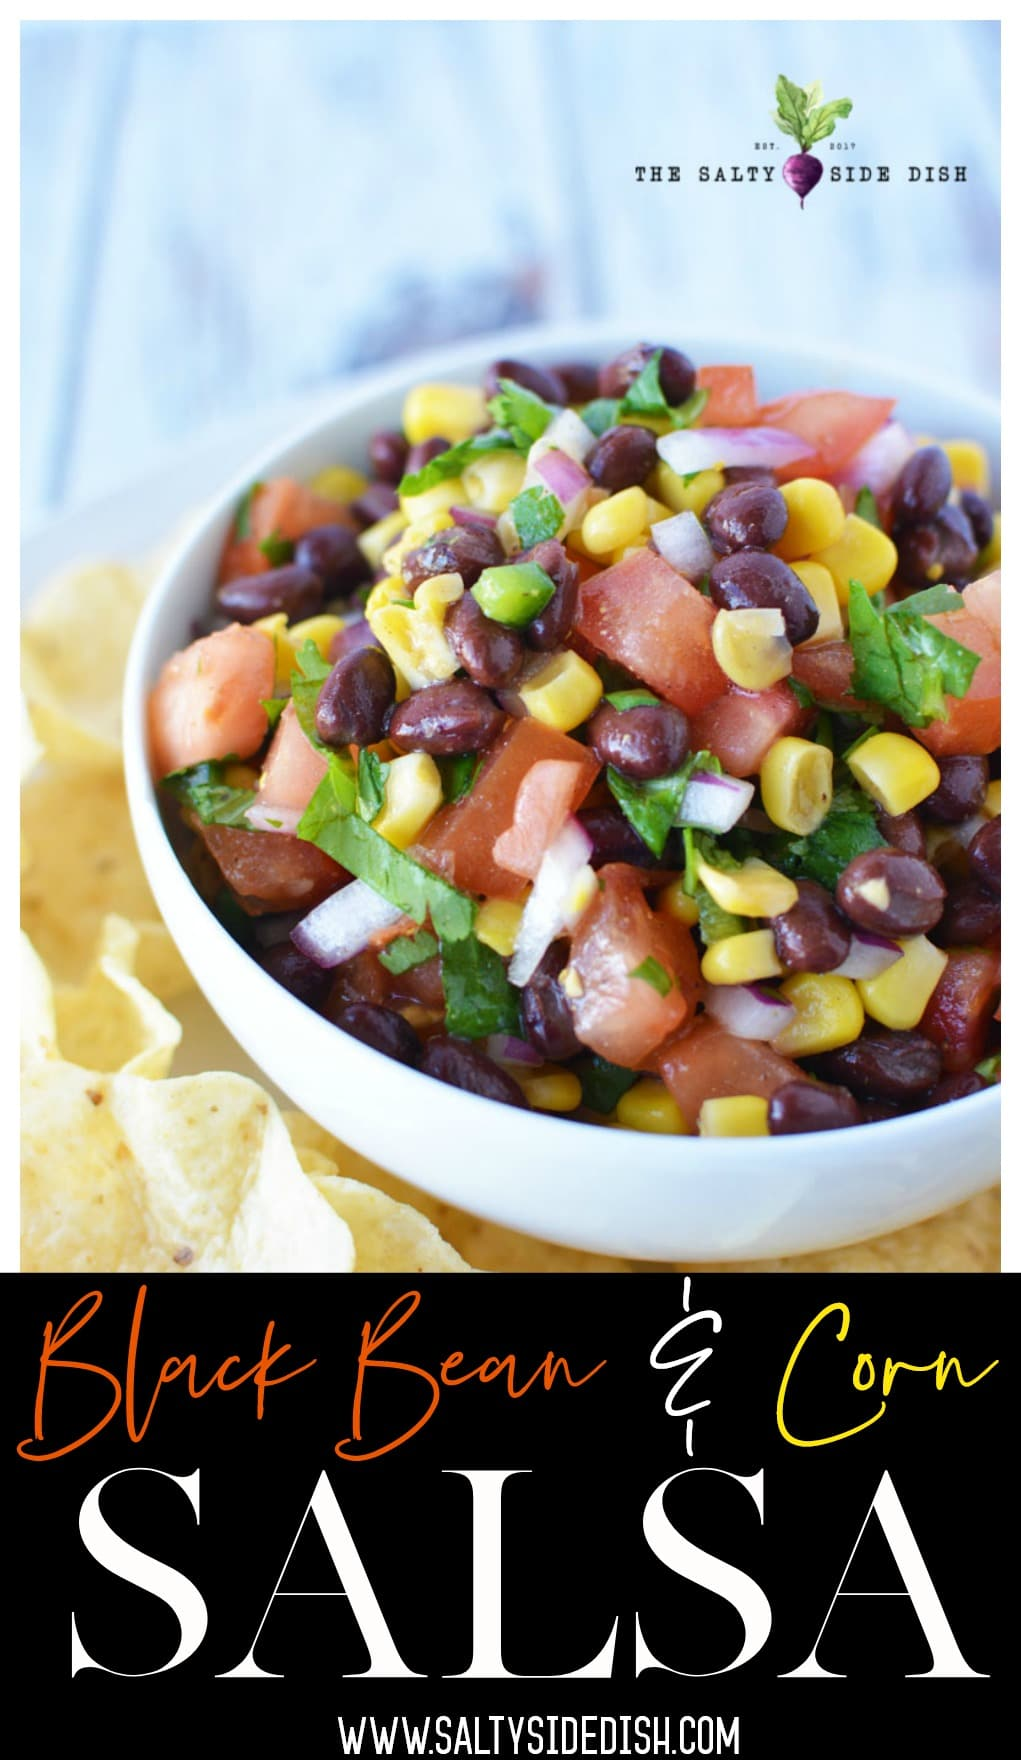 Black Bean and Corn Salsa Dip | Easy Chunky Salsa done in 5 minutes with fresh Cilantro